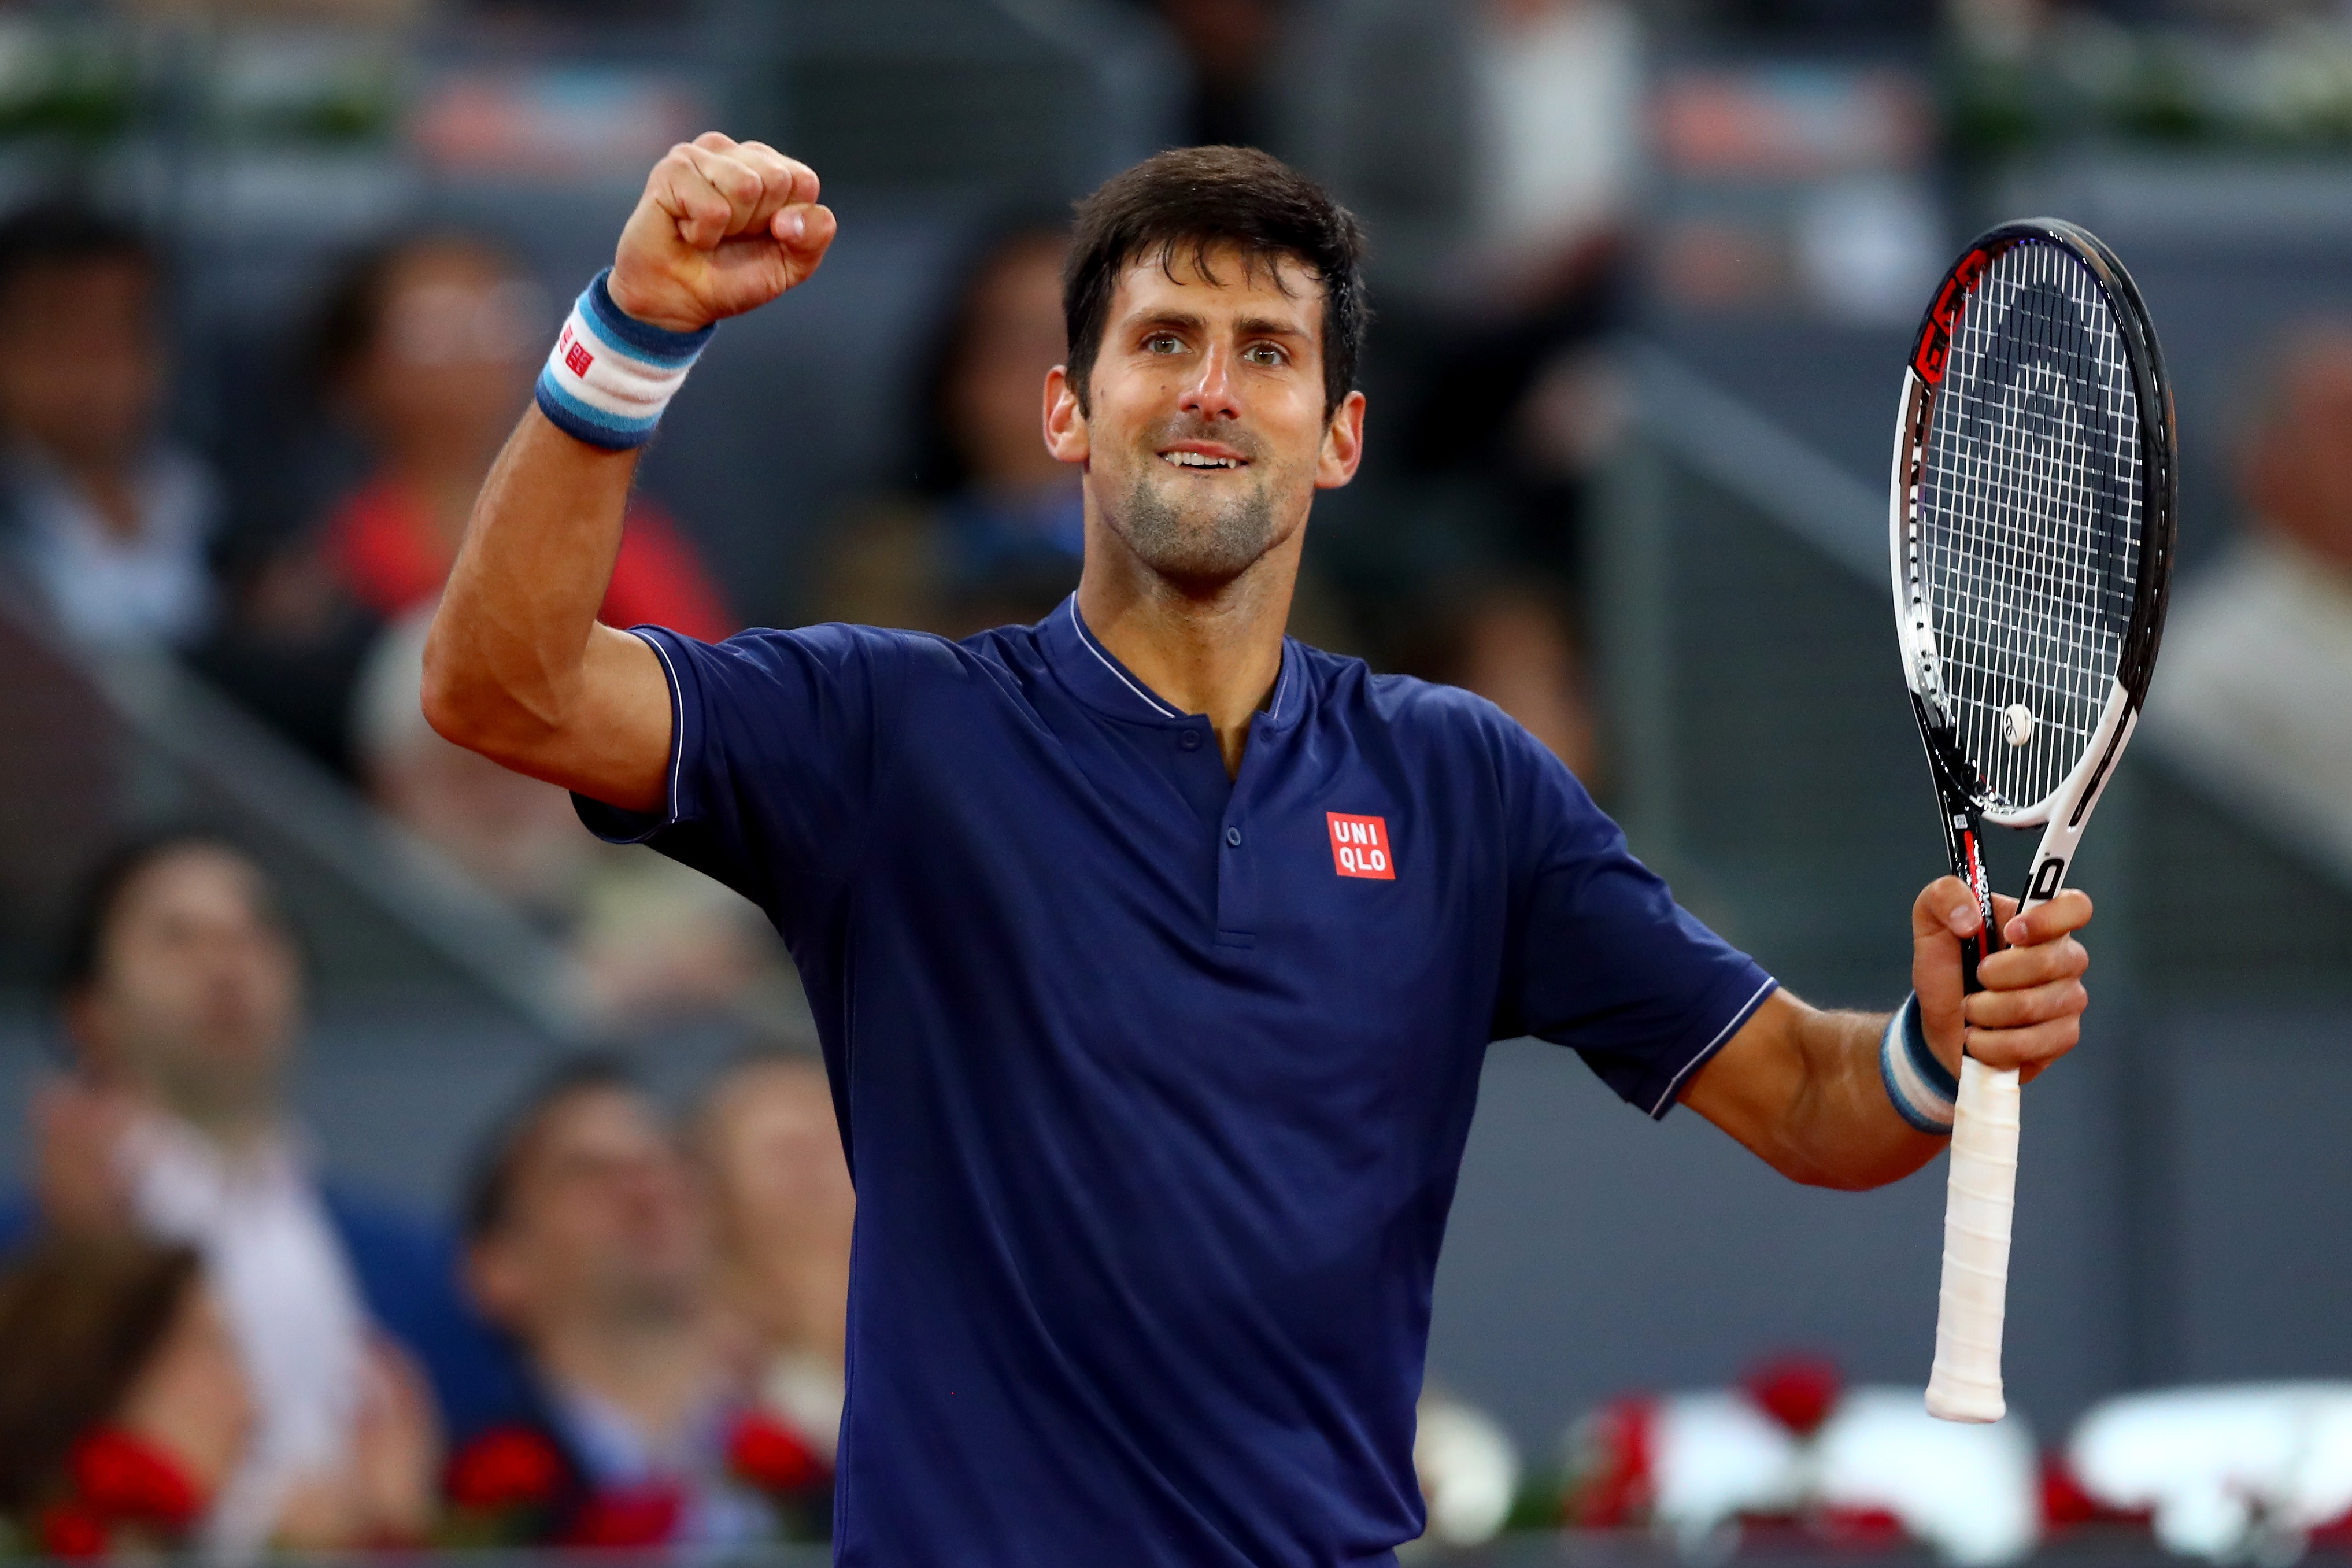 MADRID, SPAIN - MAY 11: Novak Djokovic of Serbia celebrates his victory over Feliciano Lopez of Spain on day six of the Mutua Madrid Open tennis at La Caja Magica on May 11, 2017 in Madrid, Spain. (Photo by Clive Rose/Getty Images)